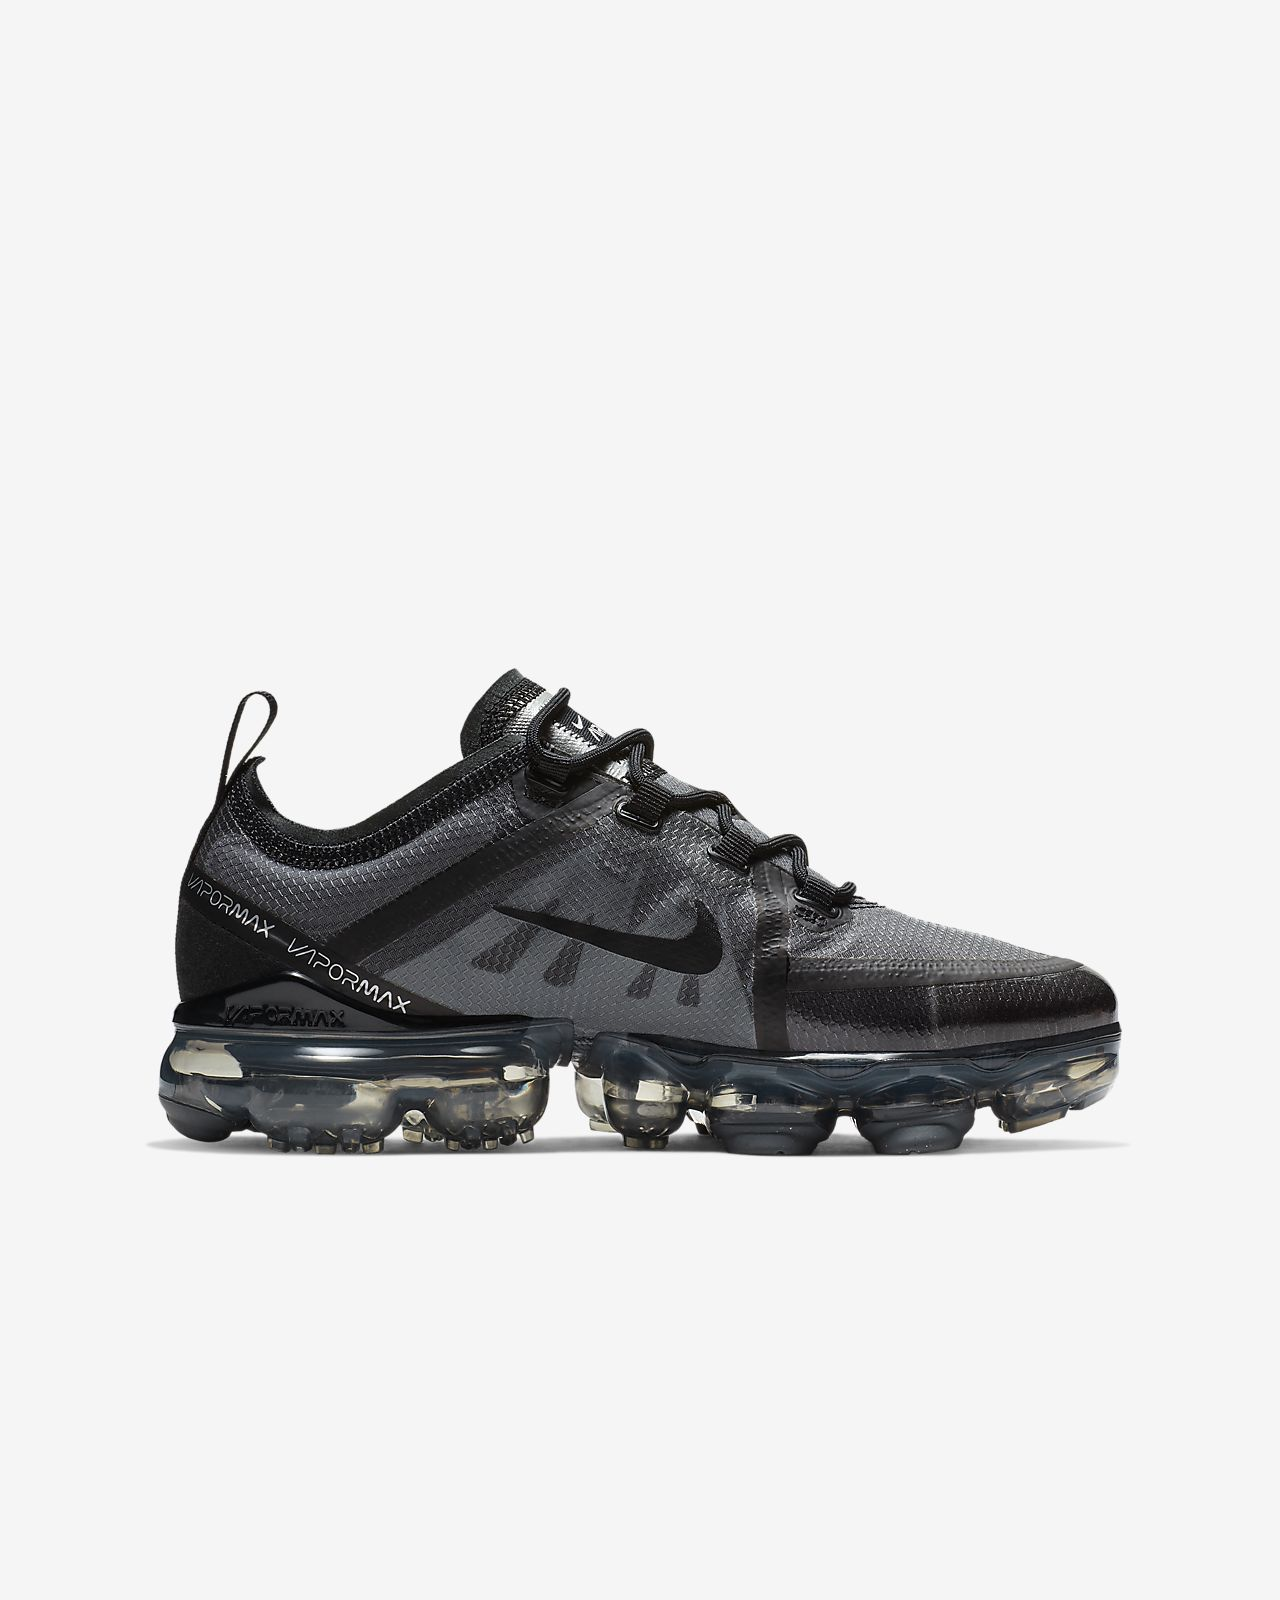 3bdb9cff807 Nike Air VaporMax 2019 Older Kids  Shoe. Nike.com NL